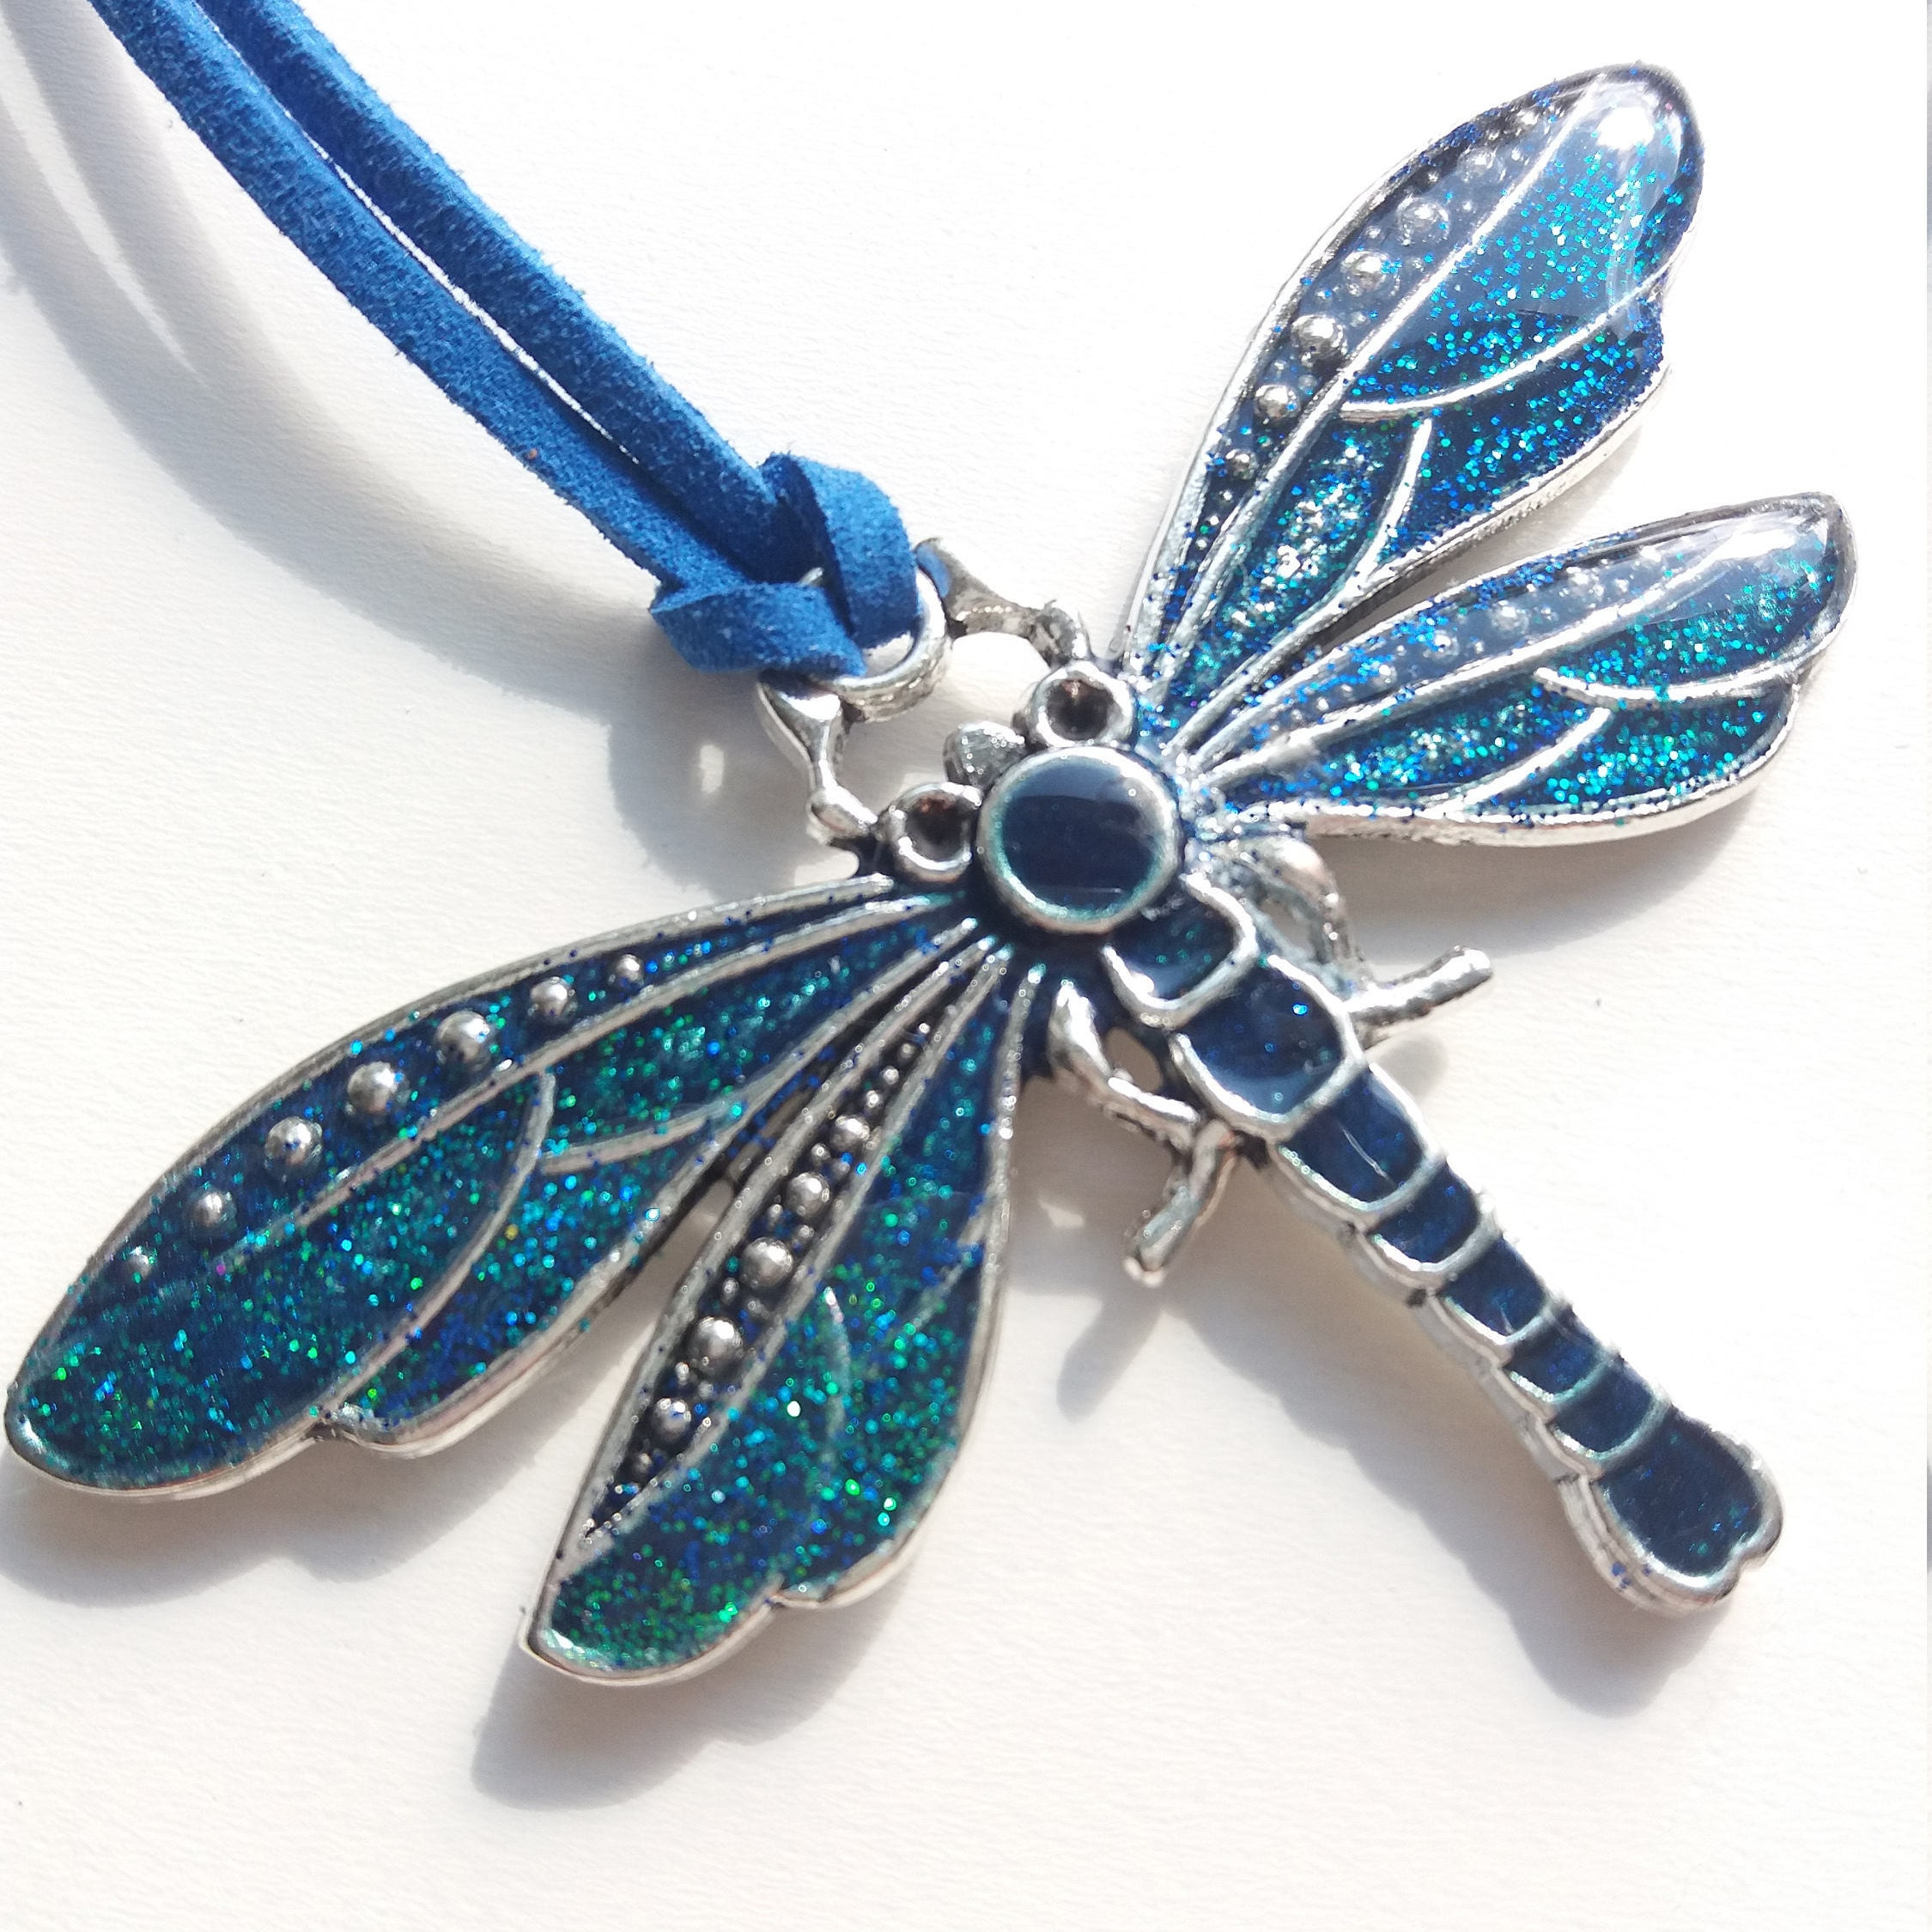 moon fly new pendant dragonfly products dragon